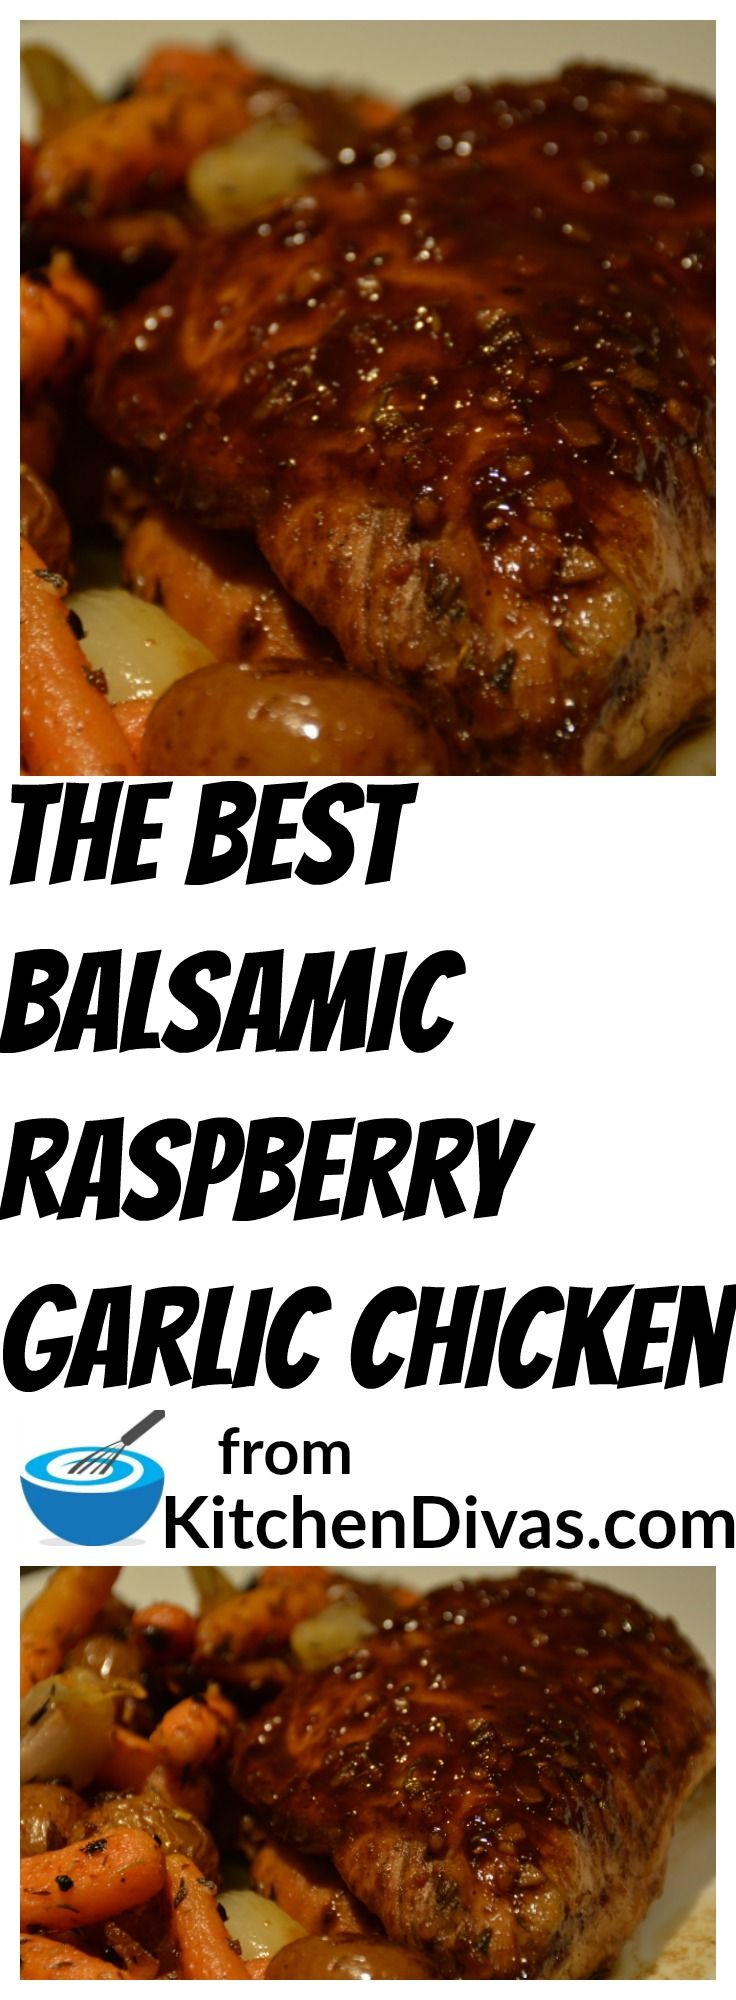 This Balsamic Raspberry Garlic Chicken is absolutely delicious and easy too! The end result is so moist and so tasty no matter which way you make it. I think I might try seedless raspberry!